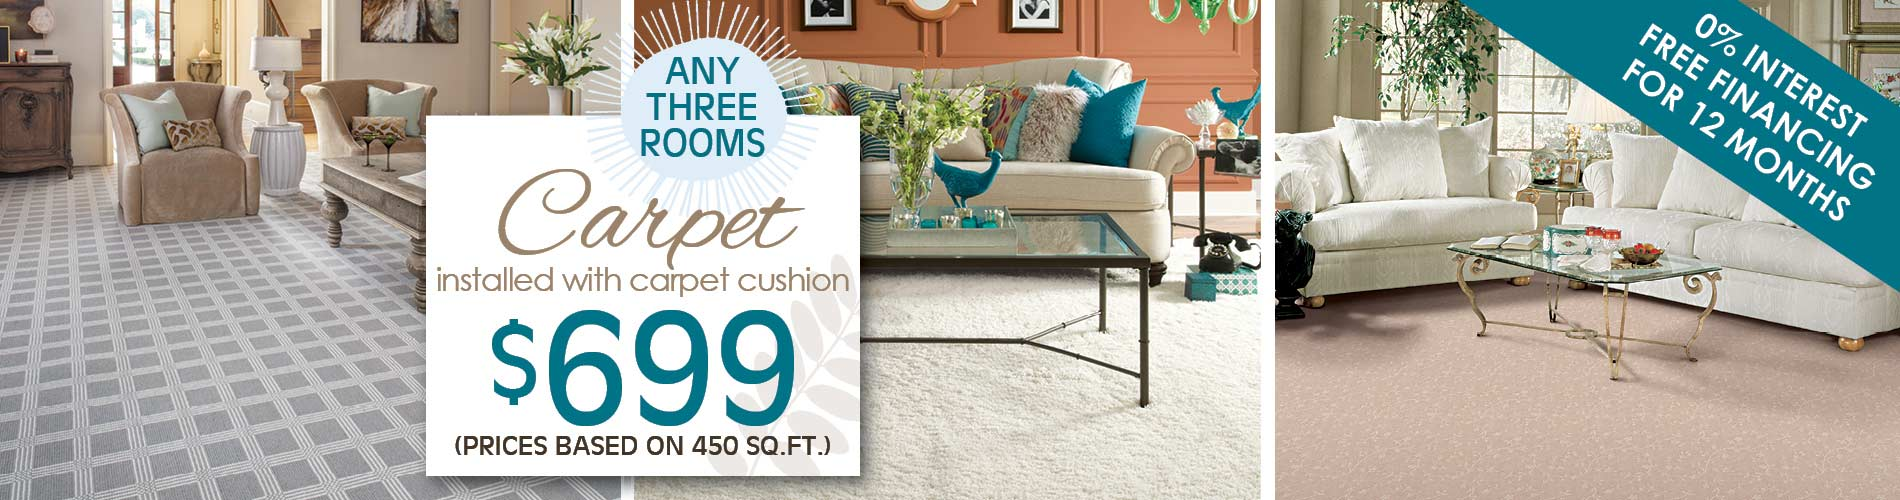 Carpet installed with carpet  cushion $699. Prices based on 450 sq. ft. Any three rooms!